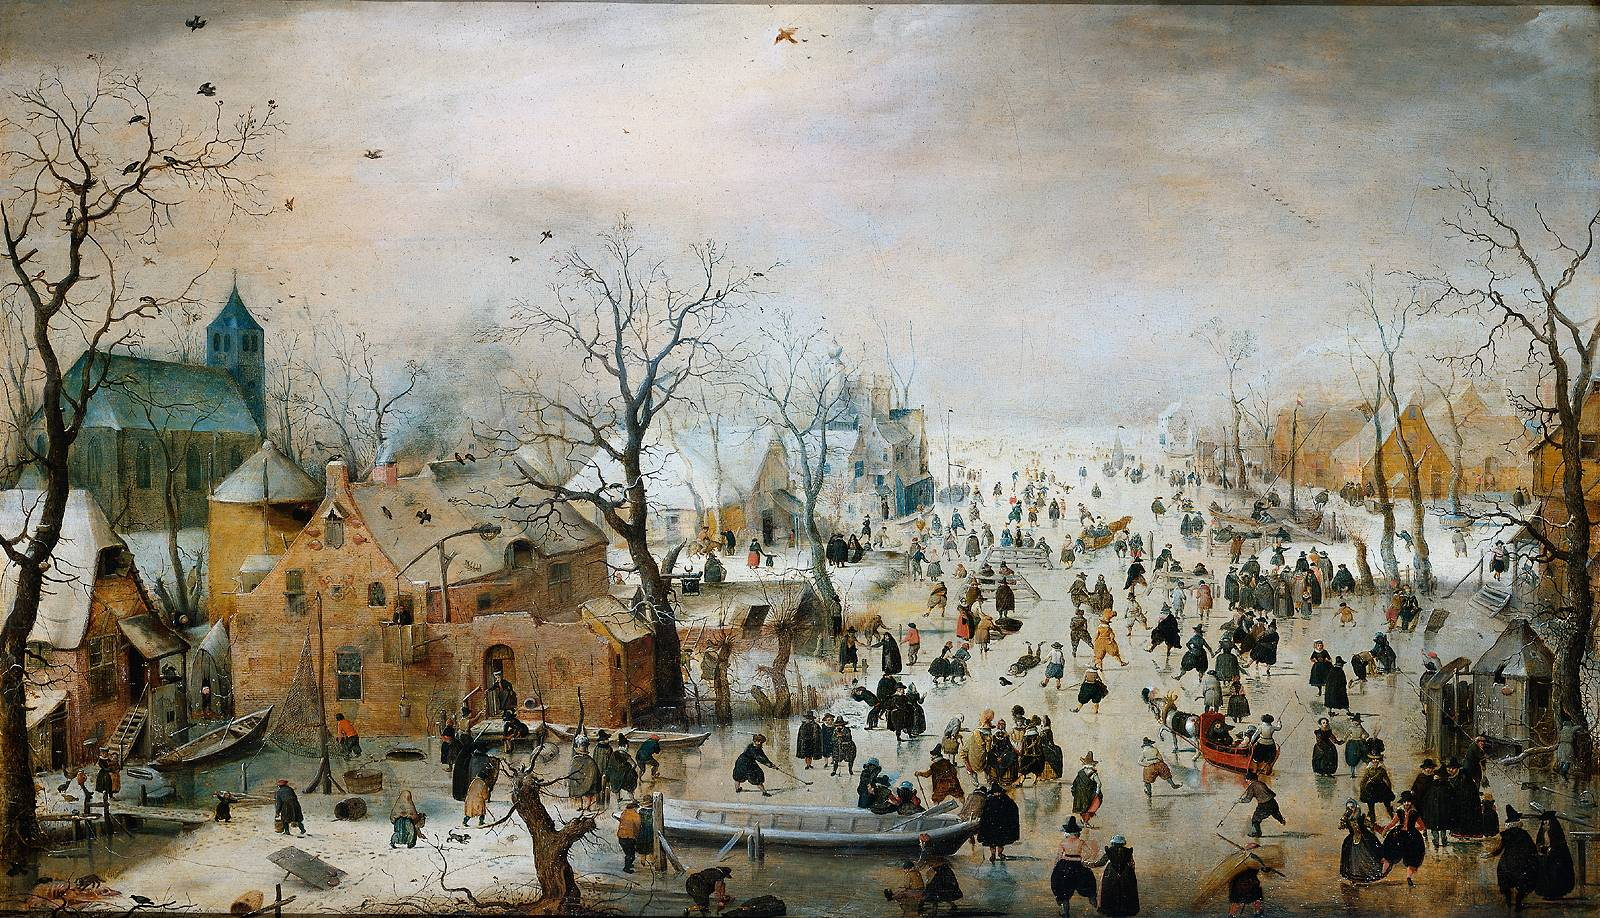 Hendrick_Avercamp_-_Winterlandschap_met_ijsvermaak